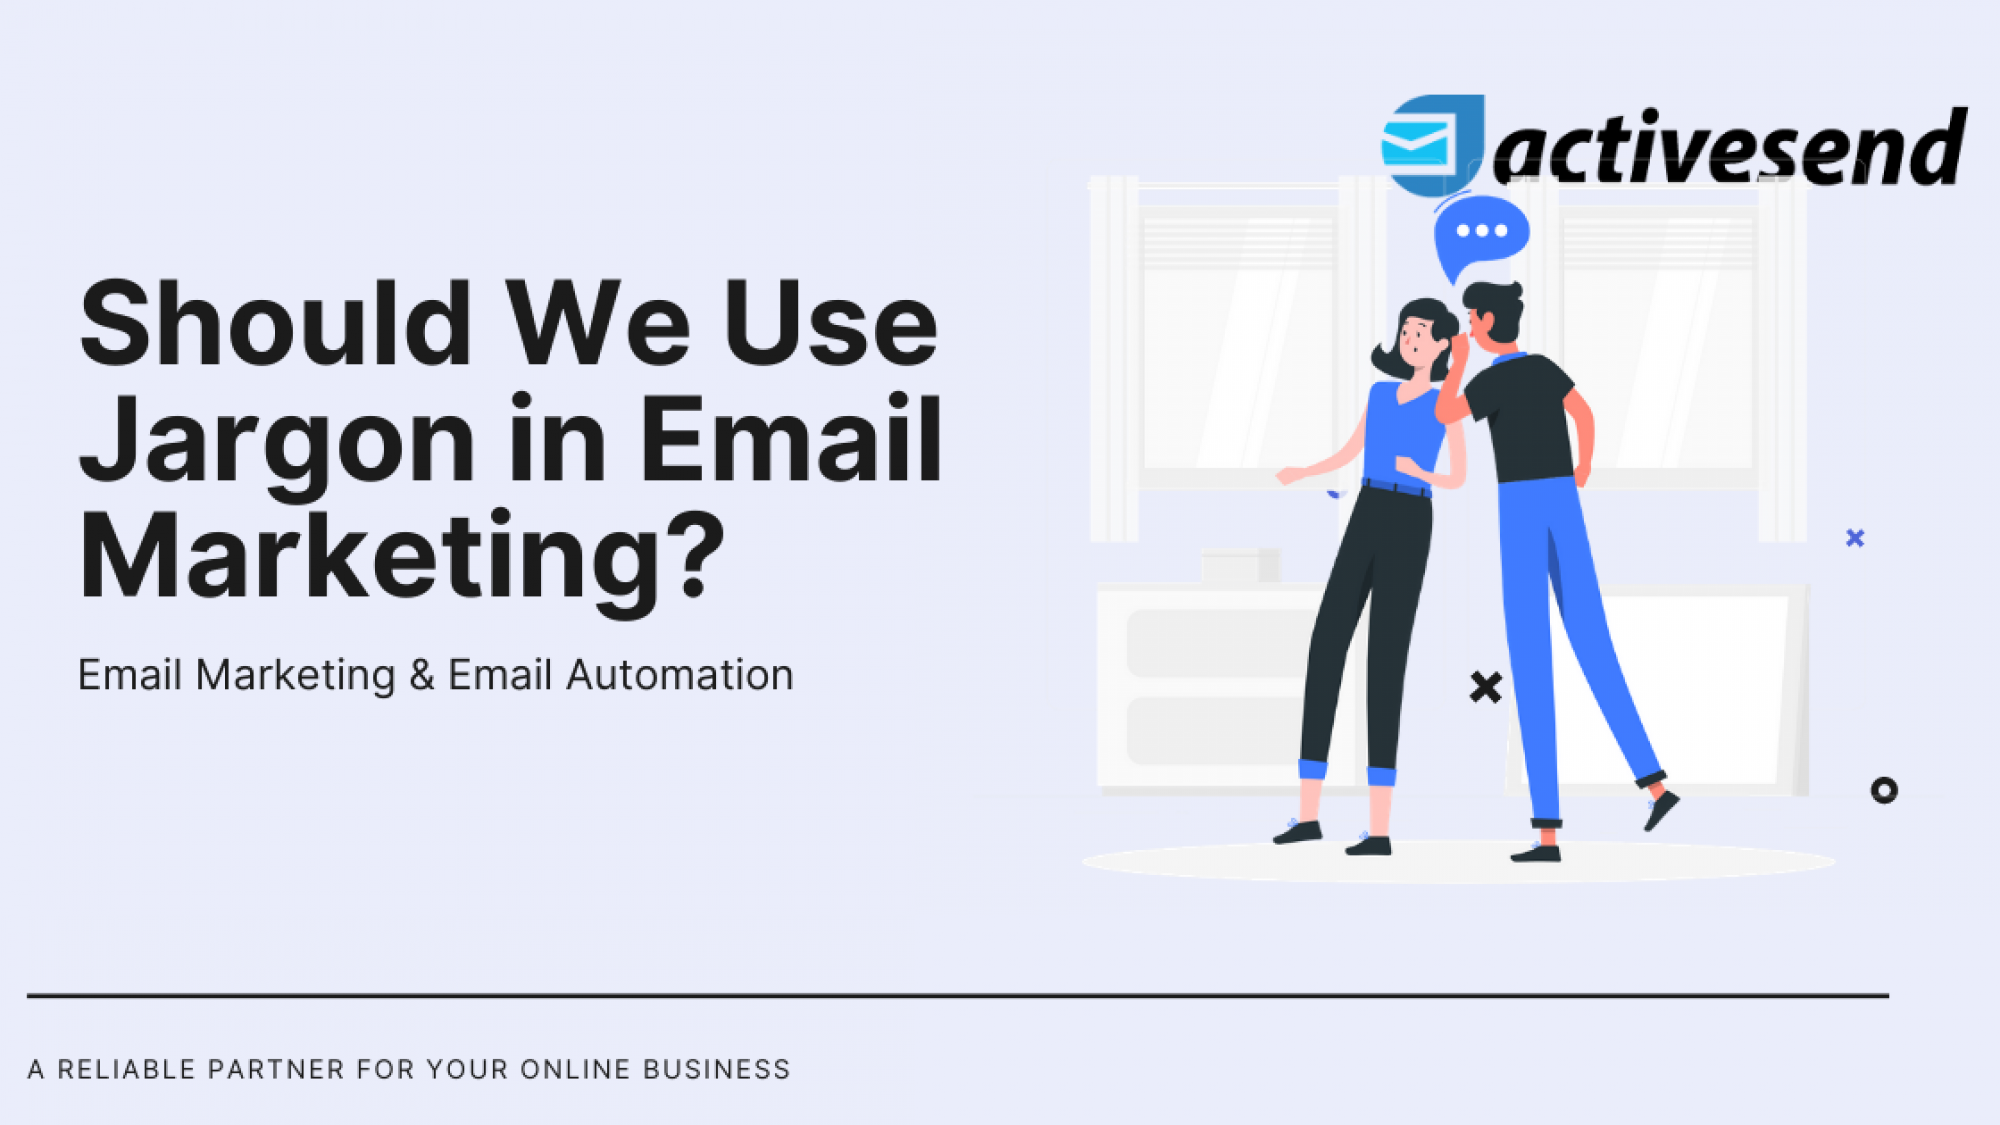 Should We Use Jargon in Email Marketing